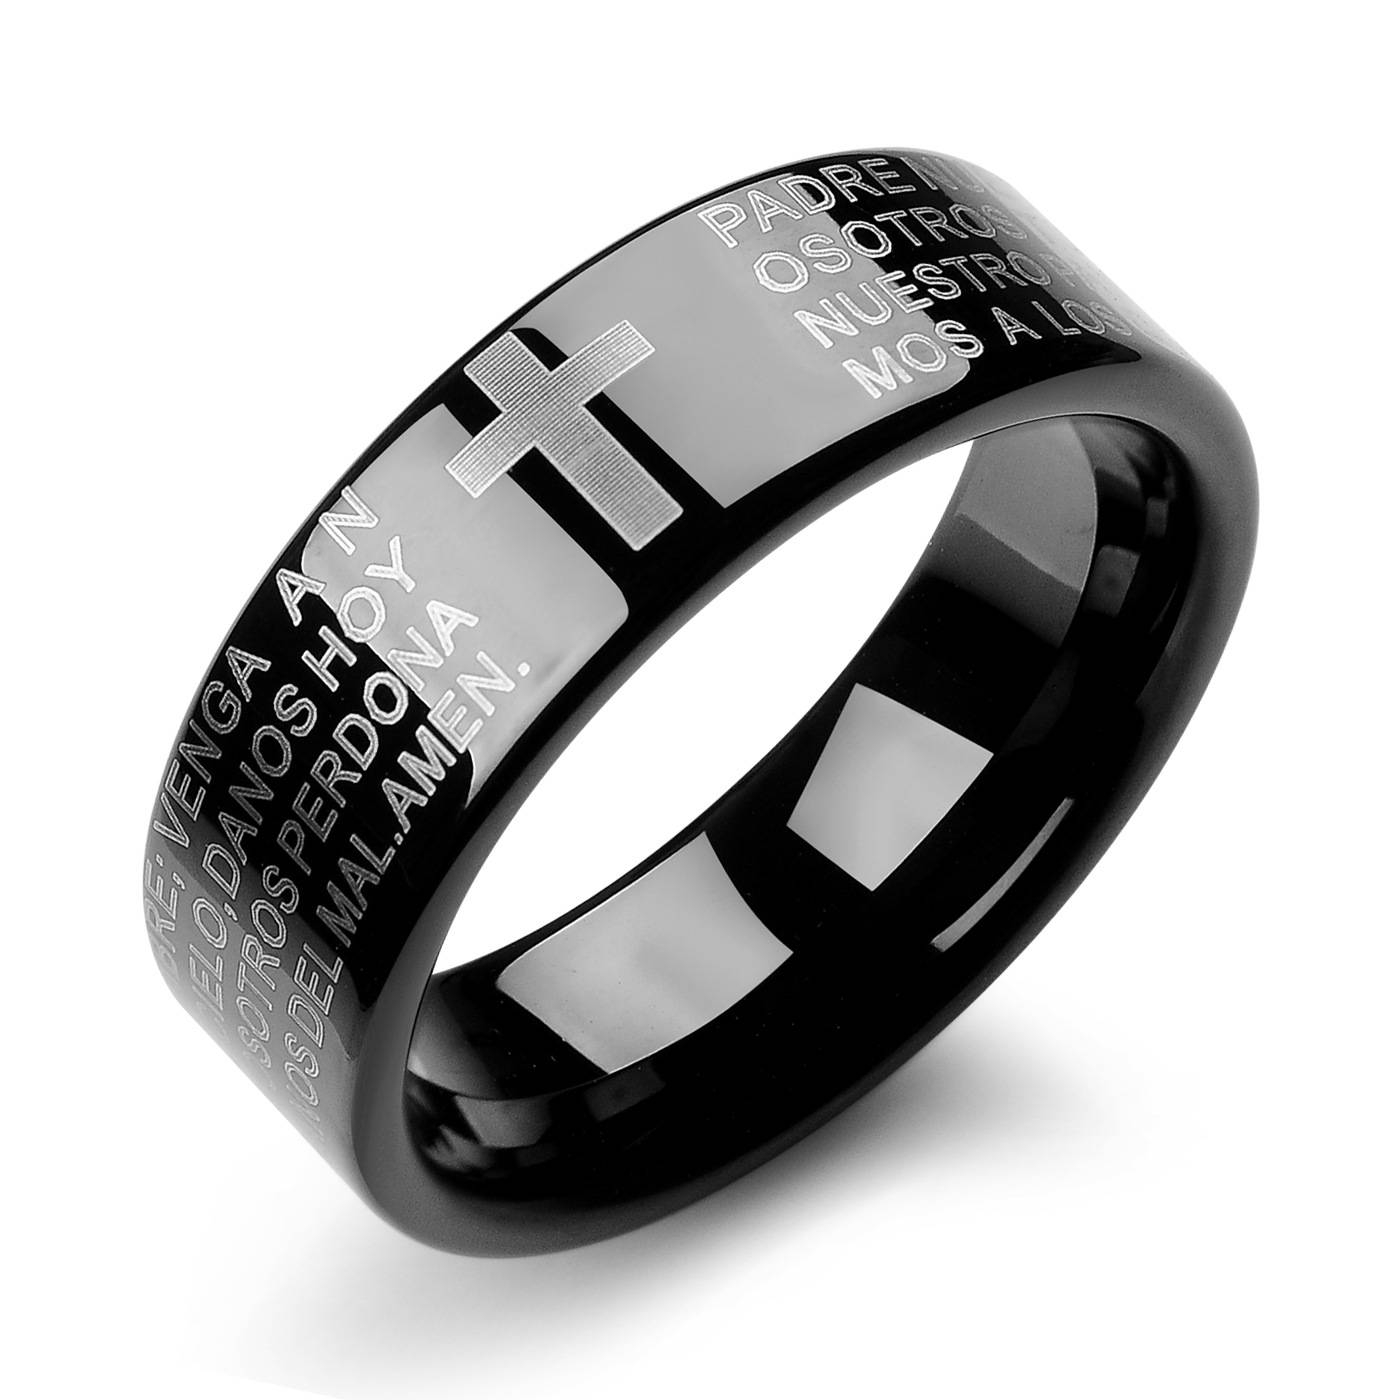 Online Buy Wholesale Scratch Resistant Rings From China Scratch Intended For Scratch Resistant Wedding Bands (View 11 of 15)